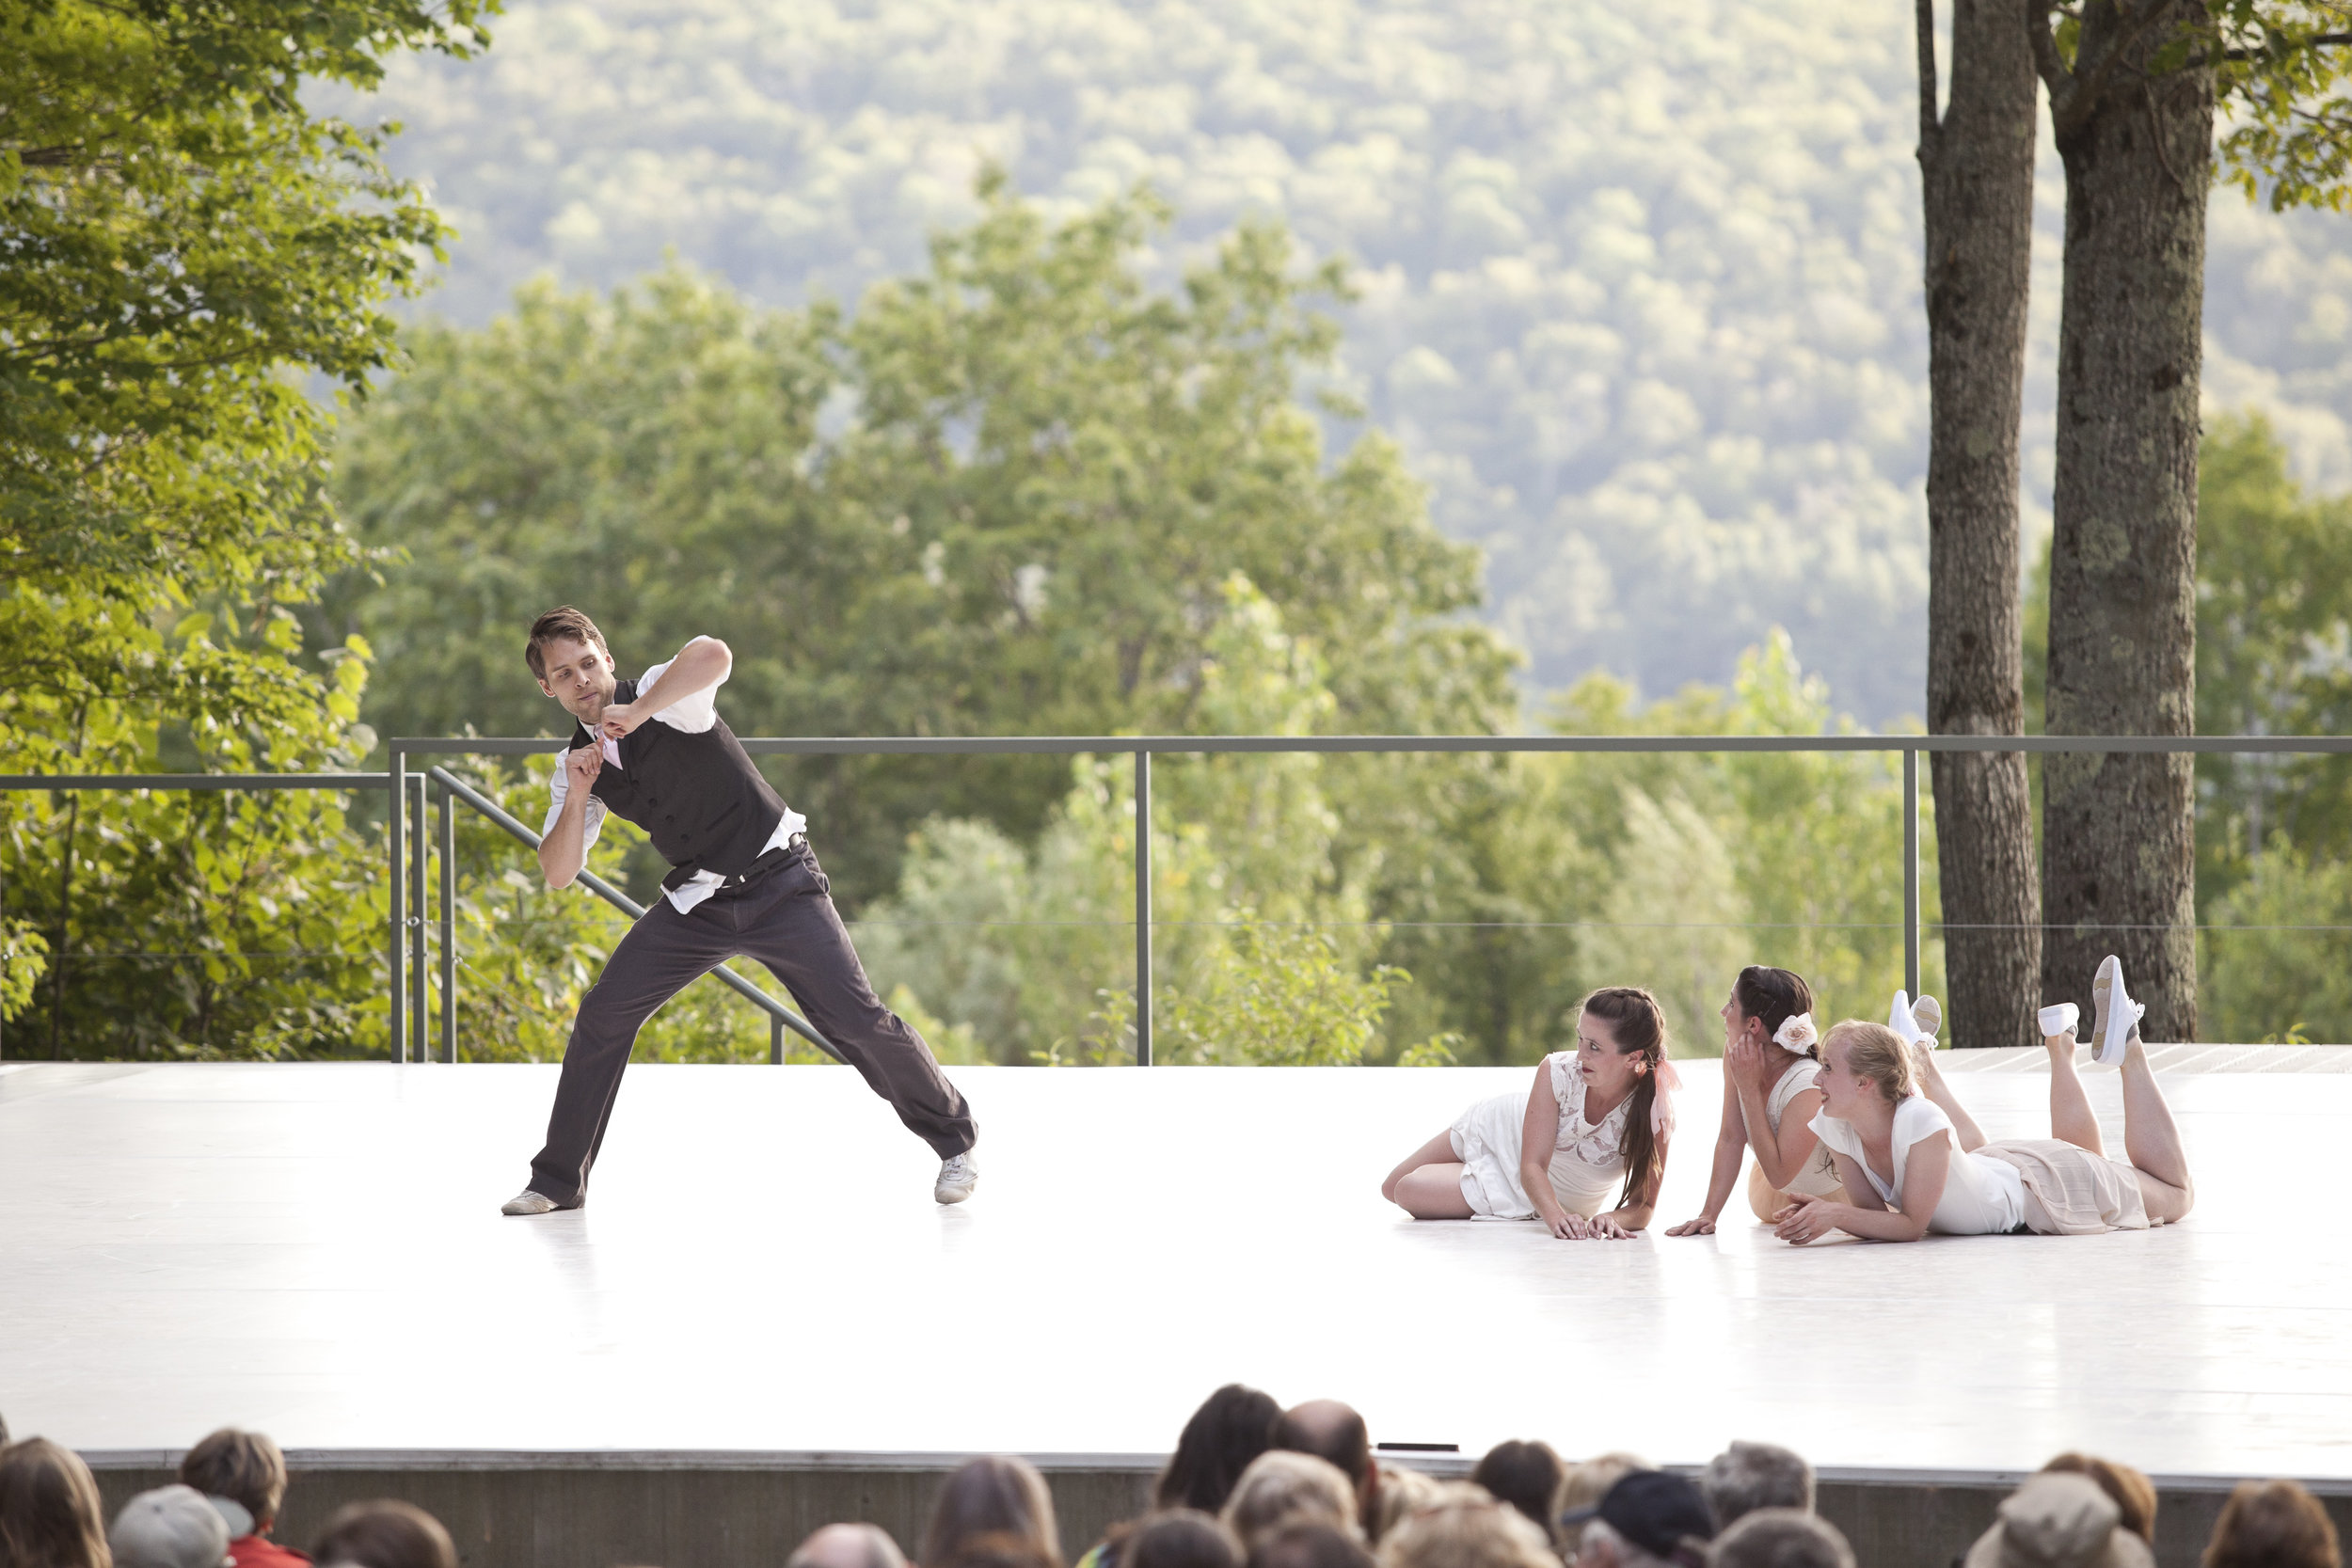 TheHellsKitchenKilowatts_2014JamieKraus_courtesyJacobsPillowDance_10.jpg